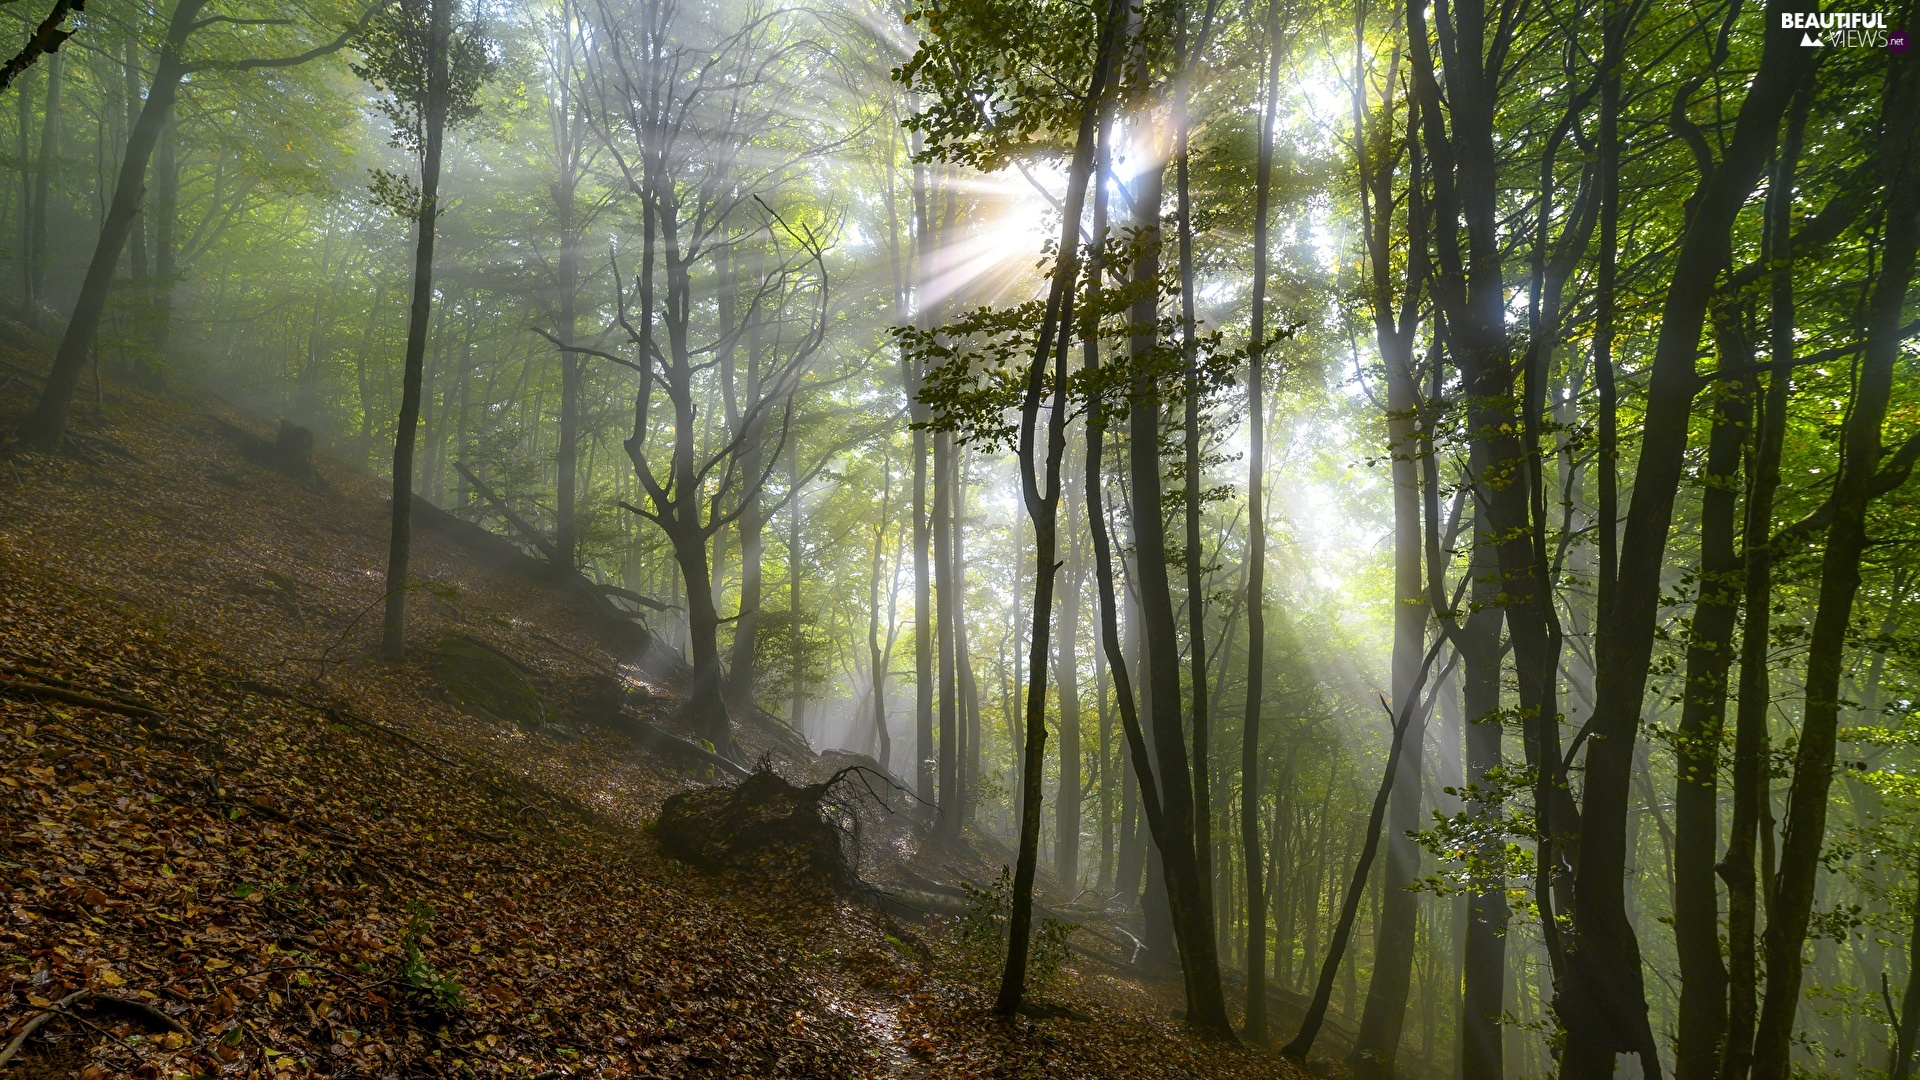 trees, forest, Fog, light breaking through sky, viewes, green ones